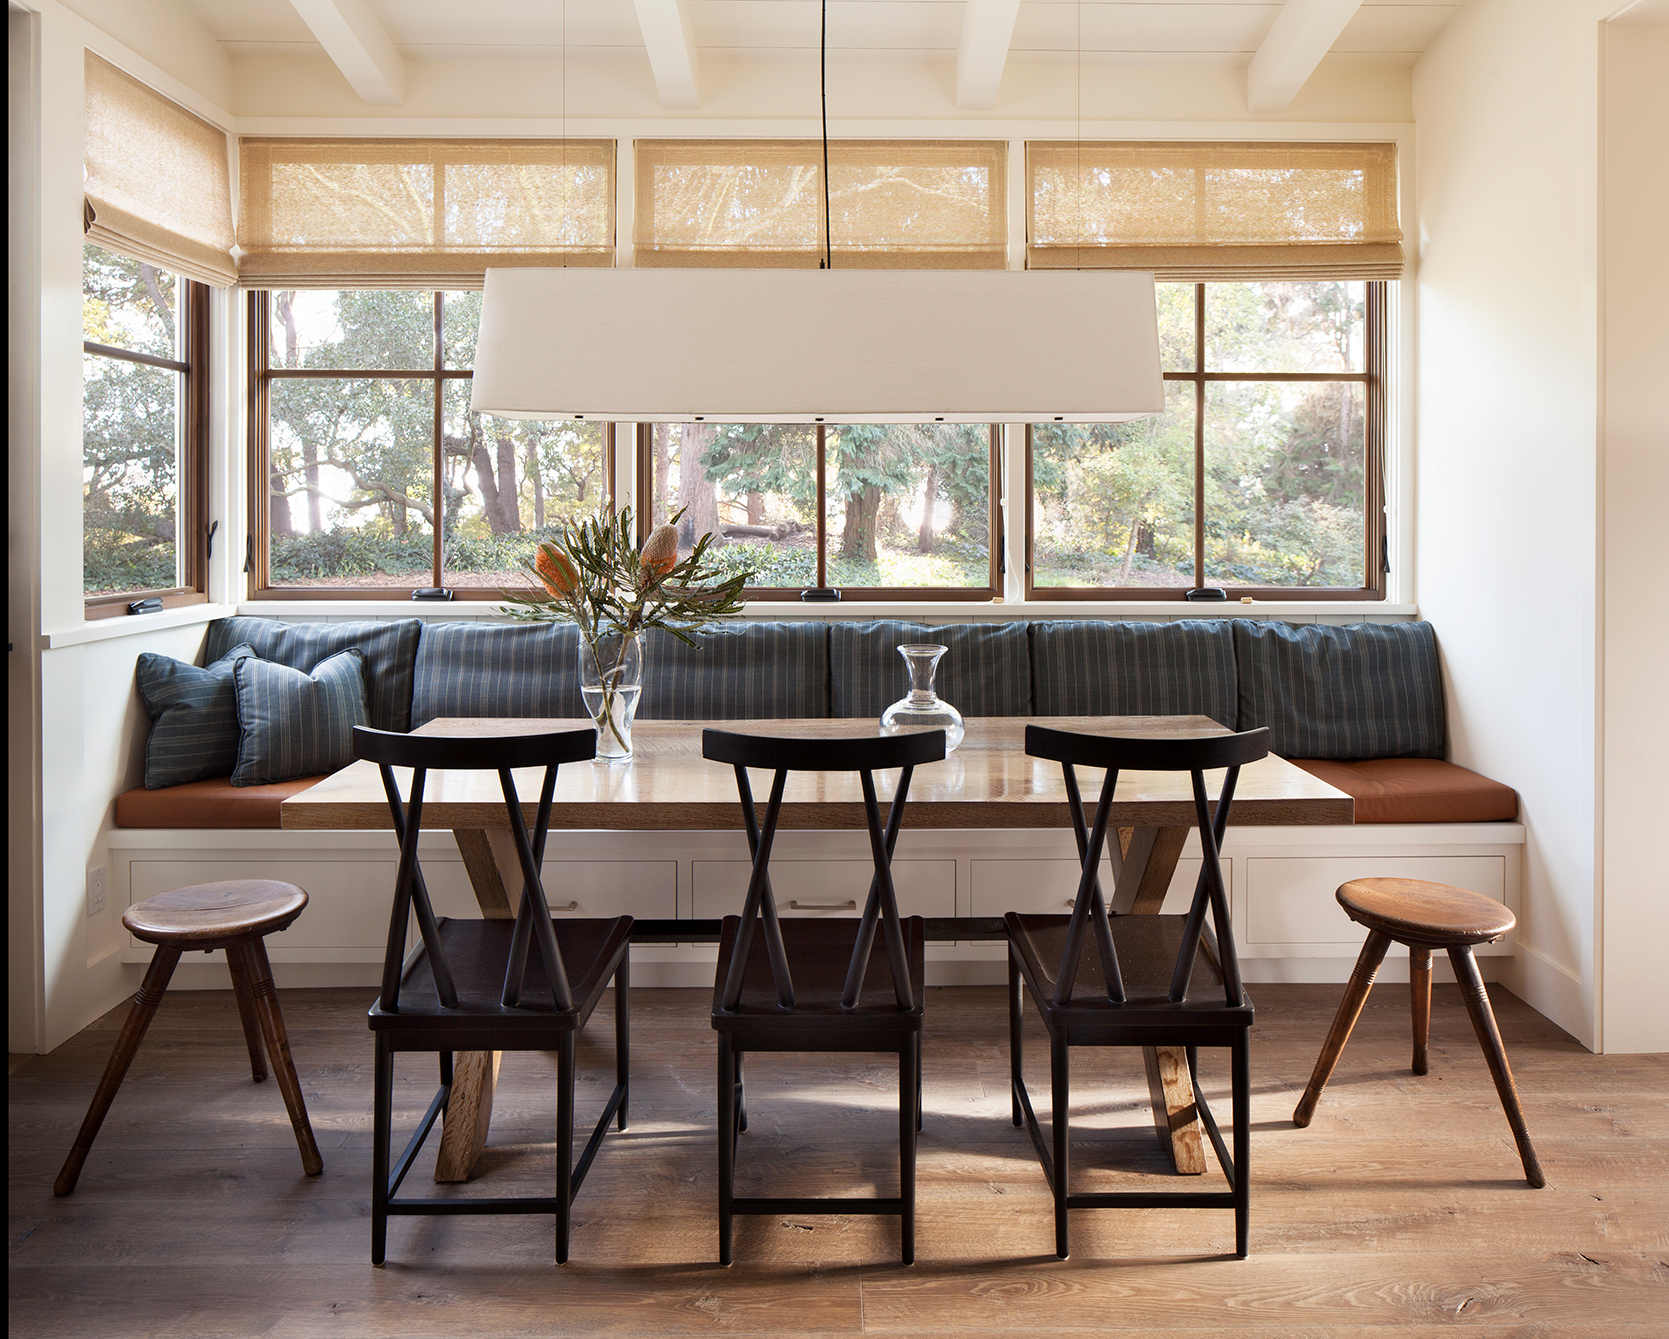 Jennifer_robins_interiors_projects_menlo_park_Garland_253_retouch_kitchen_eating_area